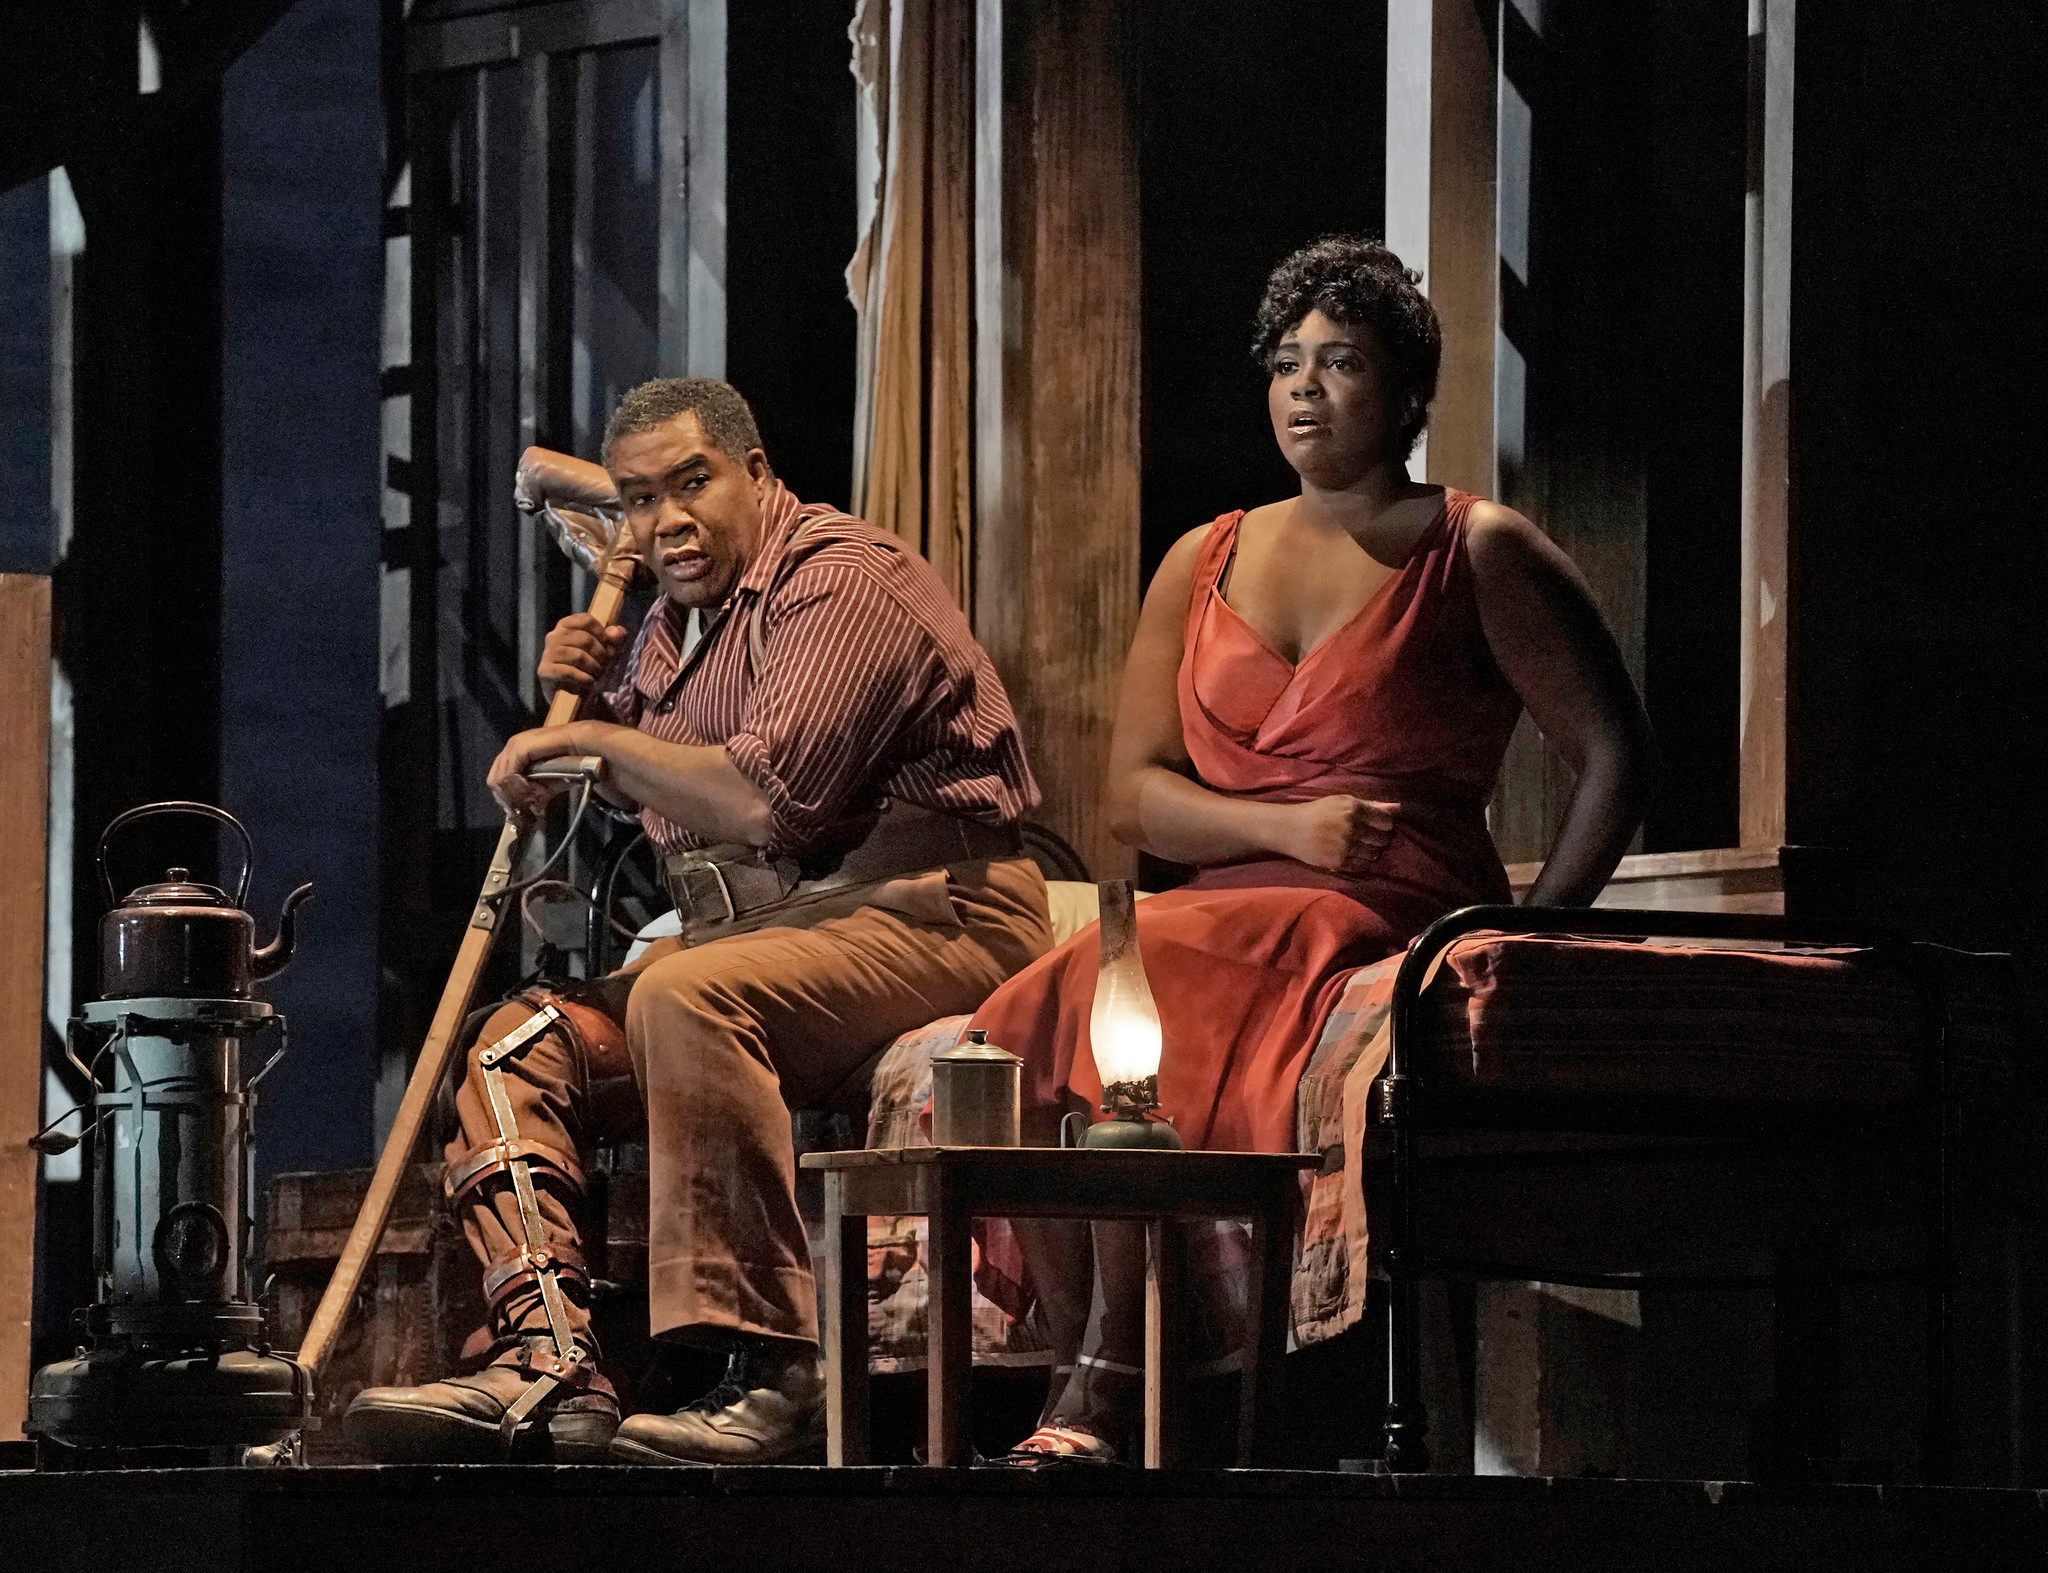 Metropolitan Opera's new production of 'Porgy and Bess' to be broadcast live in movie theaters Feb. 1